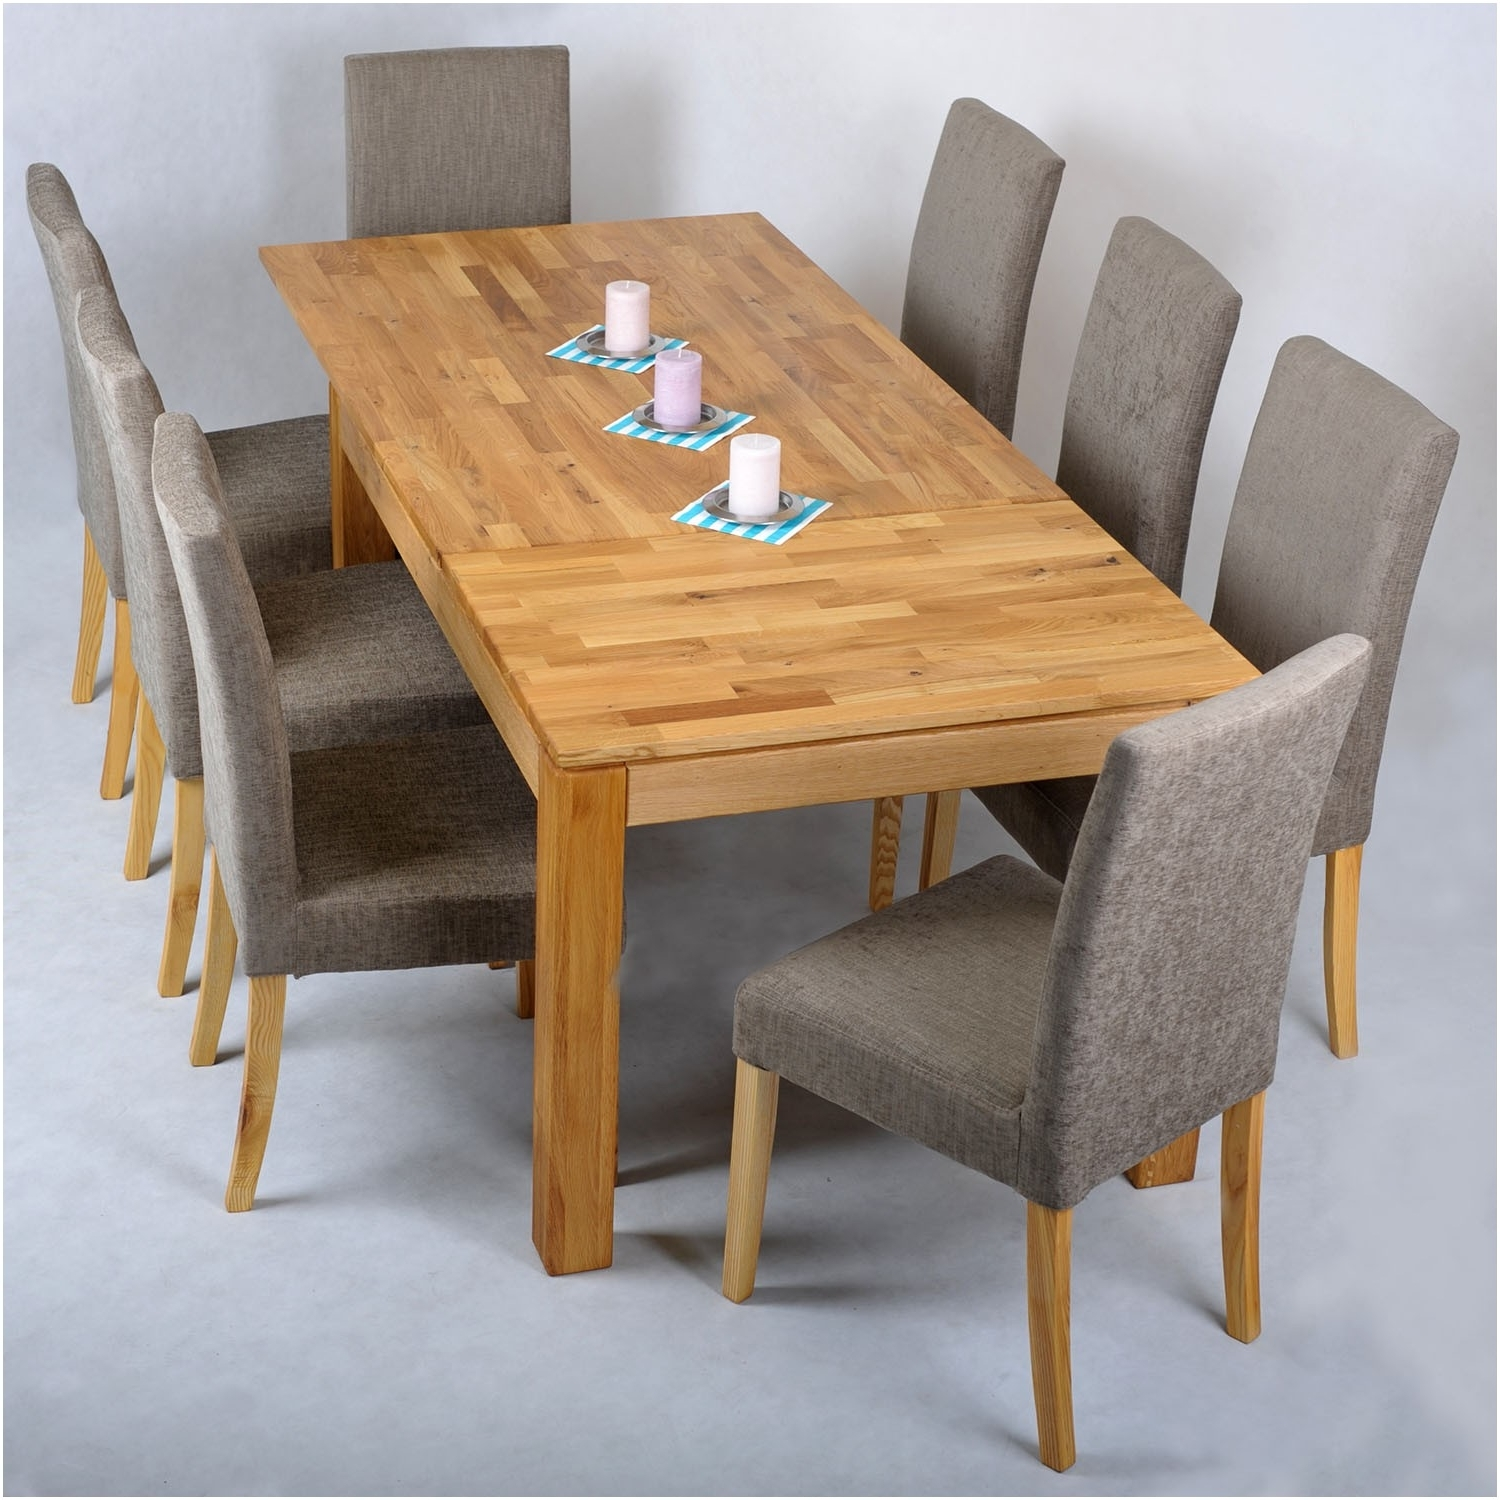 Ericamchristensen With Famous Oak Extending Dining Tables And Chairs (View 3 of 25)